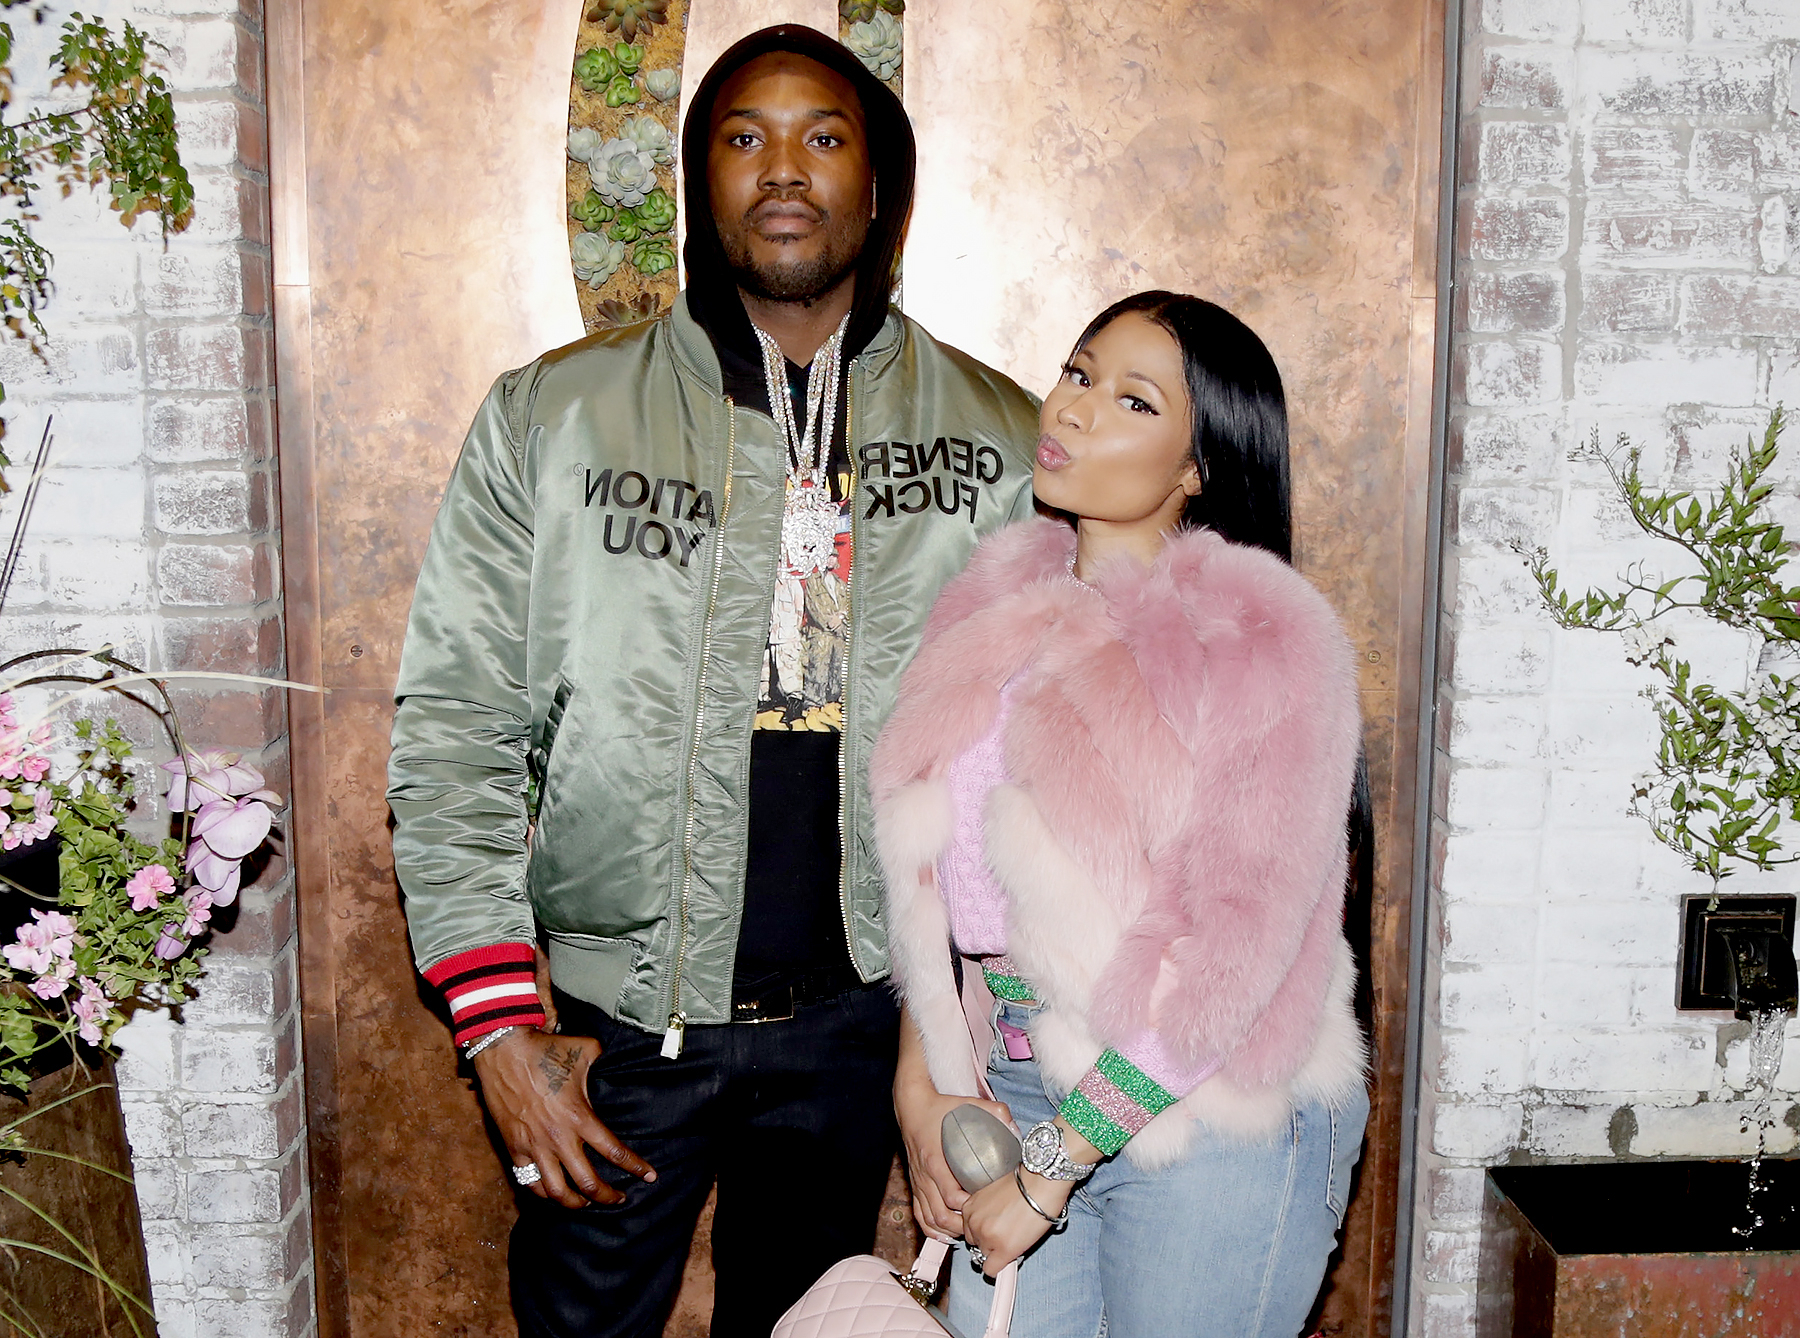 Meek Mill and Nicki Minaj attend DJ Khaled's 'The Keys' book launch dinner presented by Penguin Random House and Ciroc in Los Angeles on November 19, 2016.